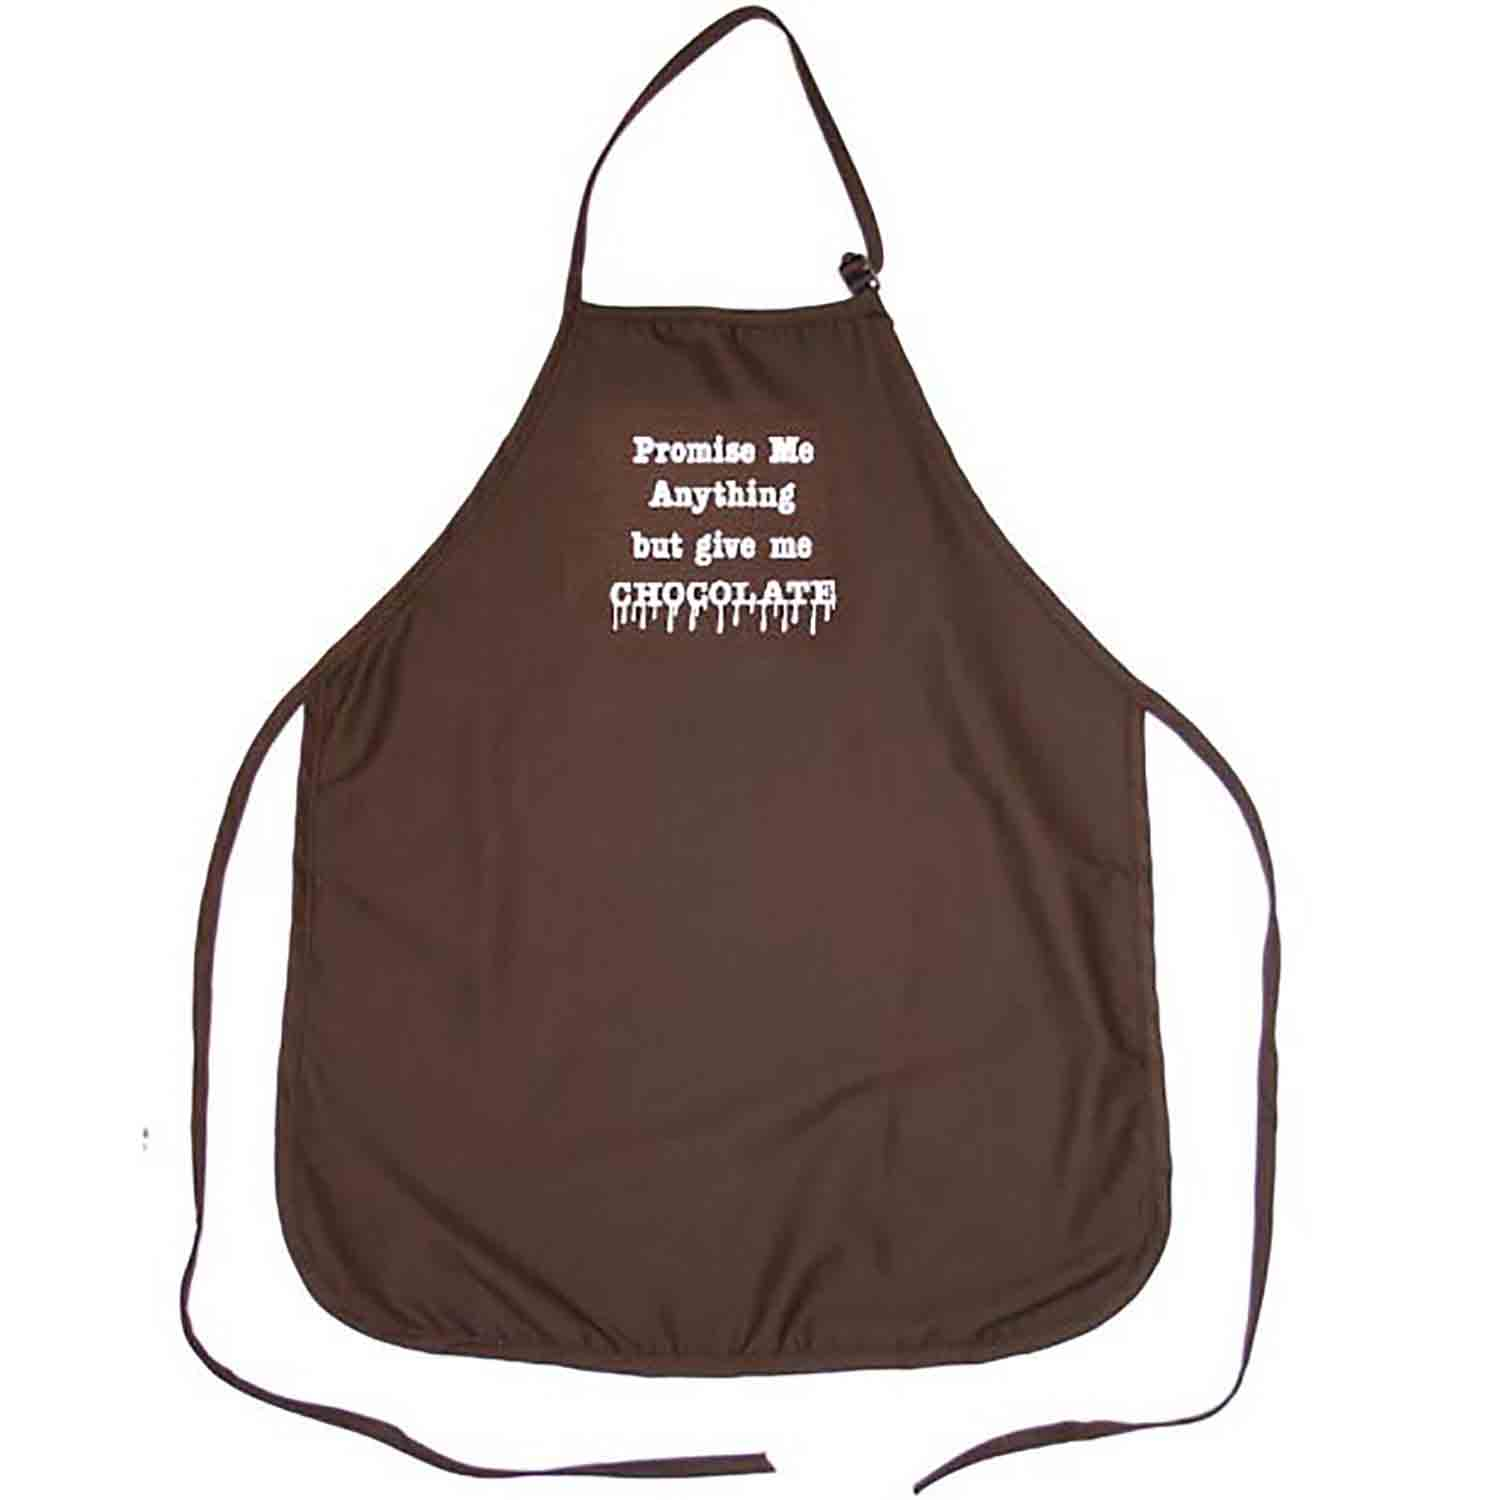 Promise Me Anything…. Apron